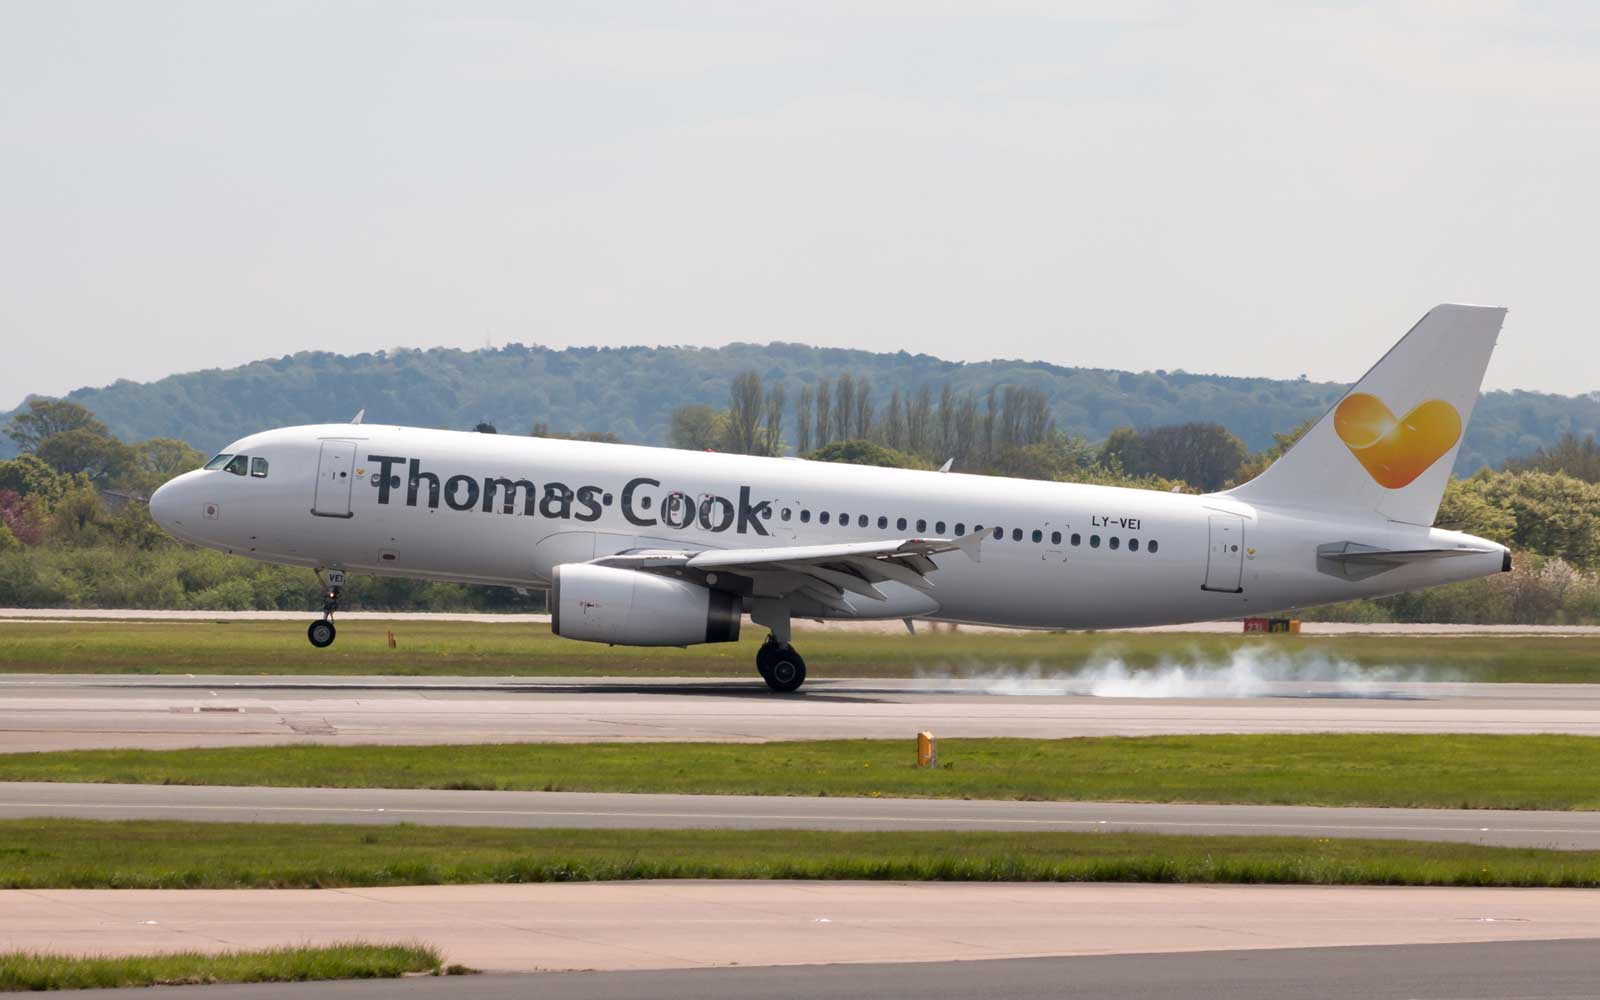 Plane Engine Explodes During Takeoff, Leaving Passengers Feeling 'Lucky to Be Alive'